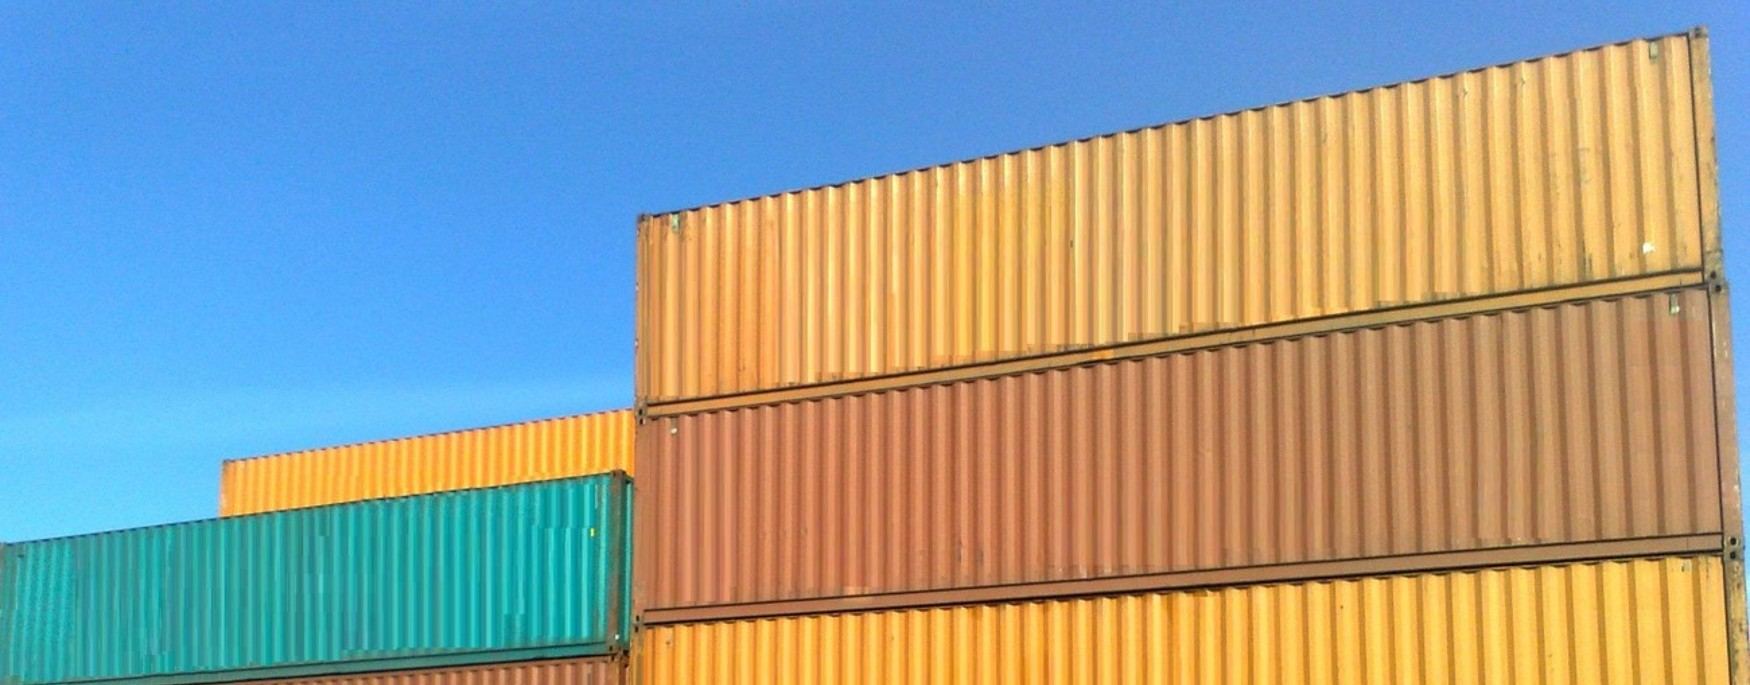 Tayper - Freight forwarders and customs brokers